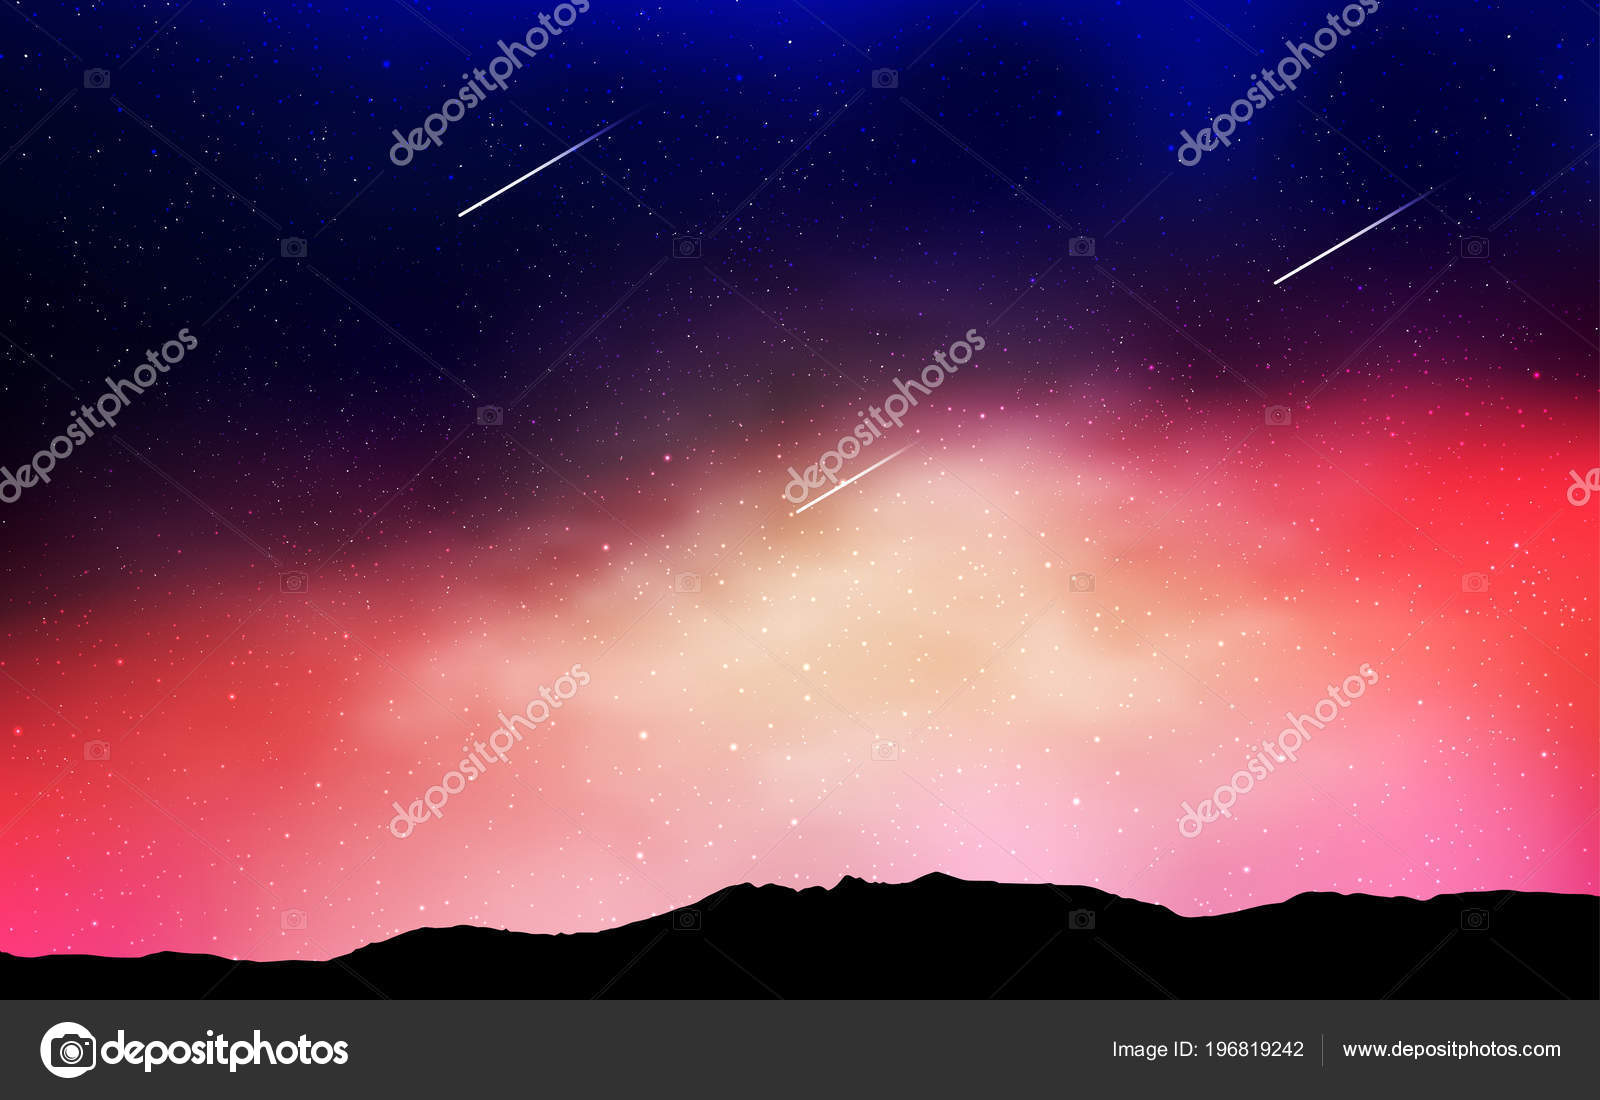 depositphotos 196819242 stock illustration light blue red vector background